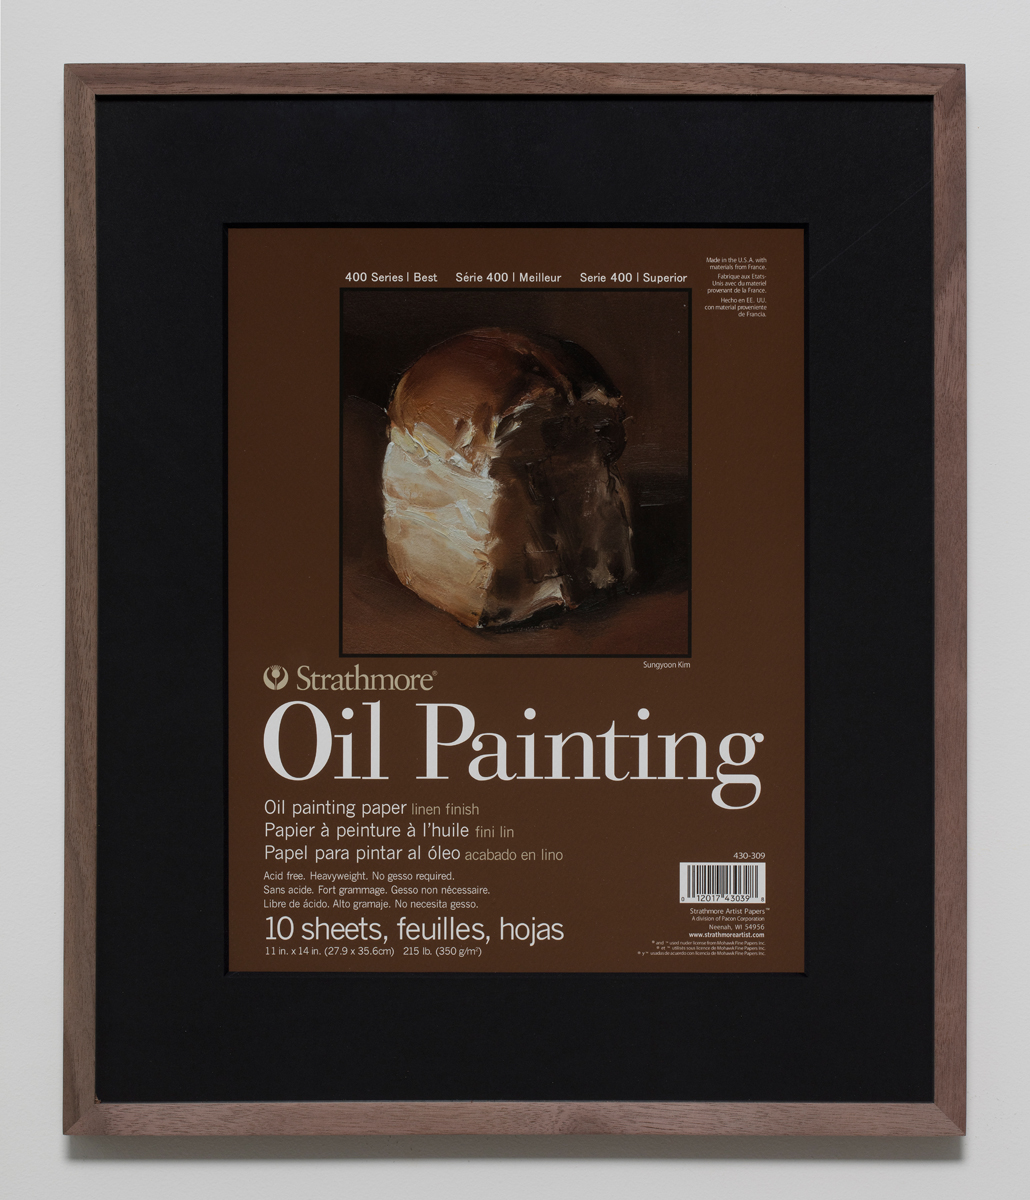 400 Series Oil Painting(6), 2018, Inkjet print on paper in walnut frame, 50.5 x 42.5 cm 이미지 제공: 갤러리현대 Courtesy of the artist and Gallery Hyundai.